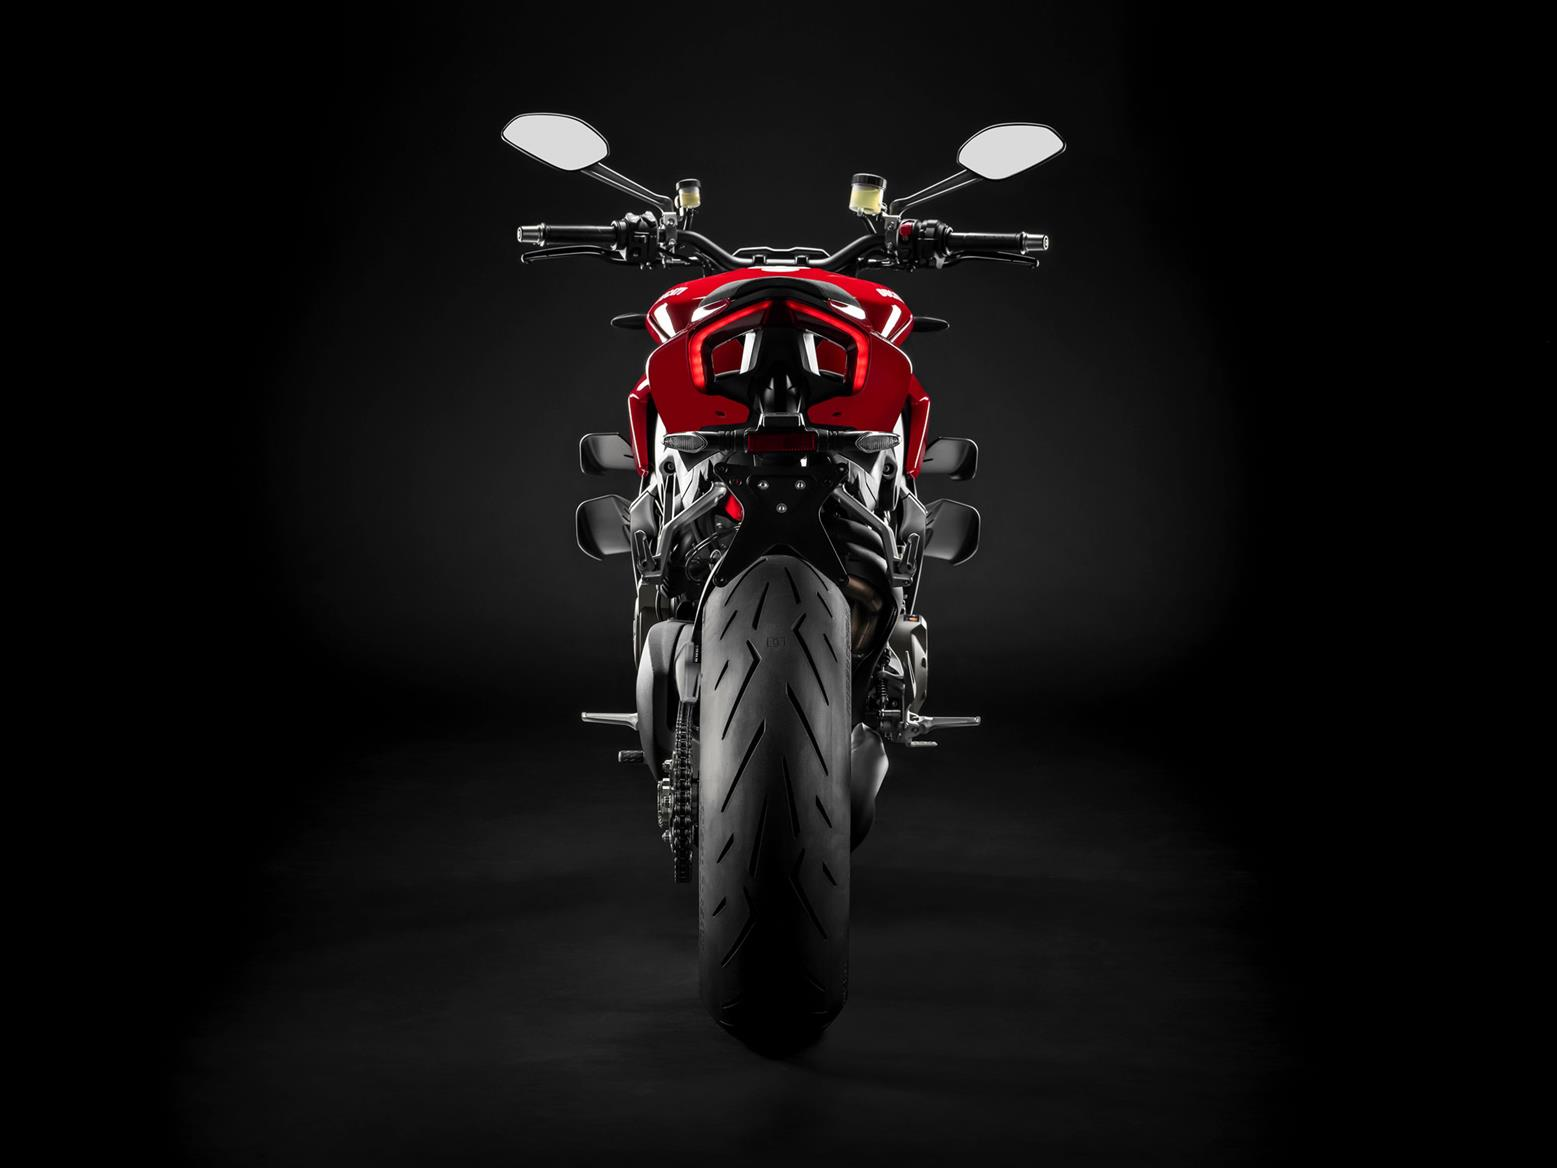 Ducati Streetfighter V4 tail end